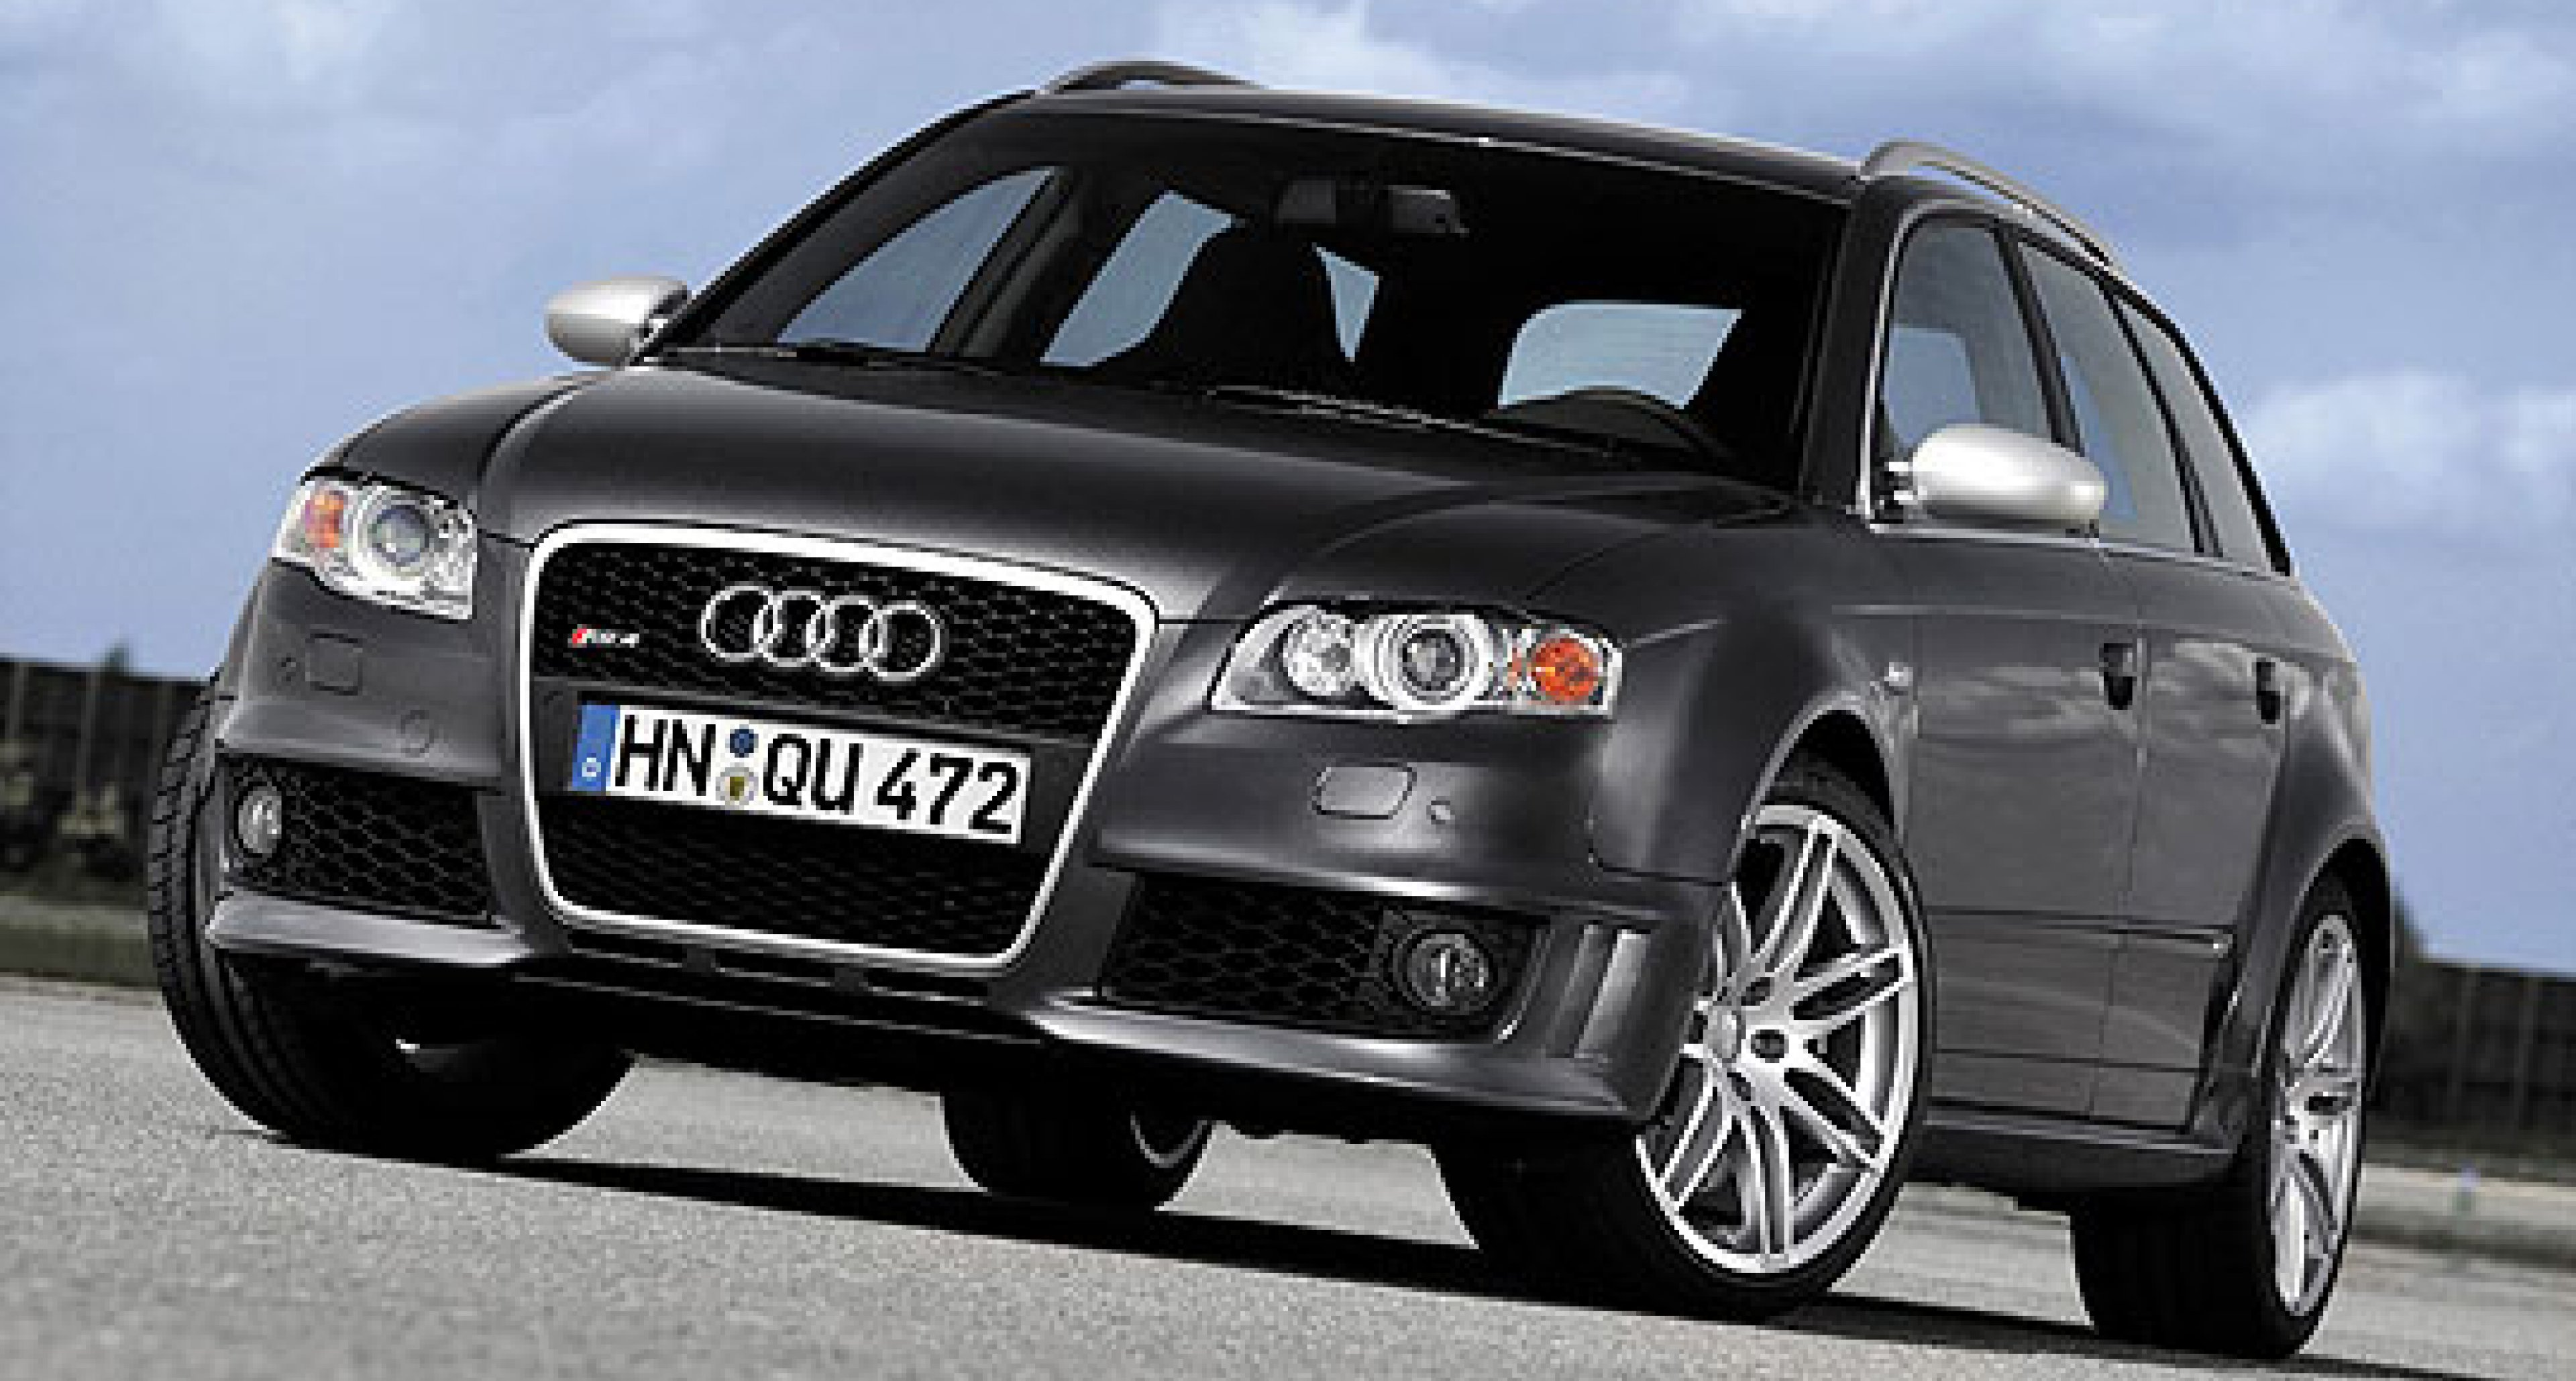 Audi RS 4 now also in Avant and Cabriolet versions